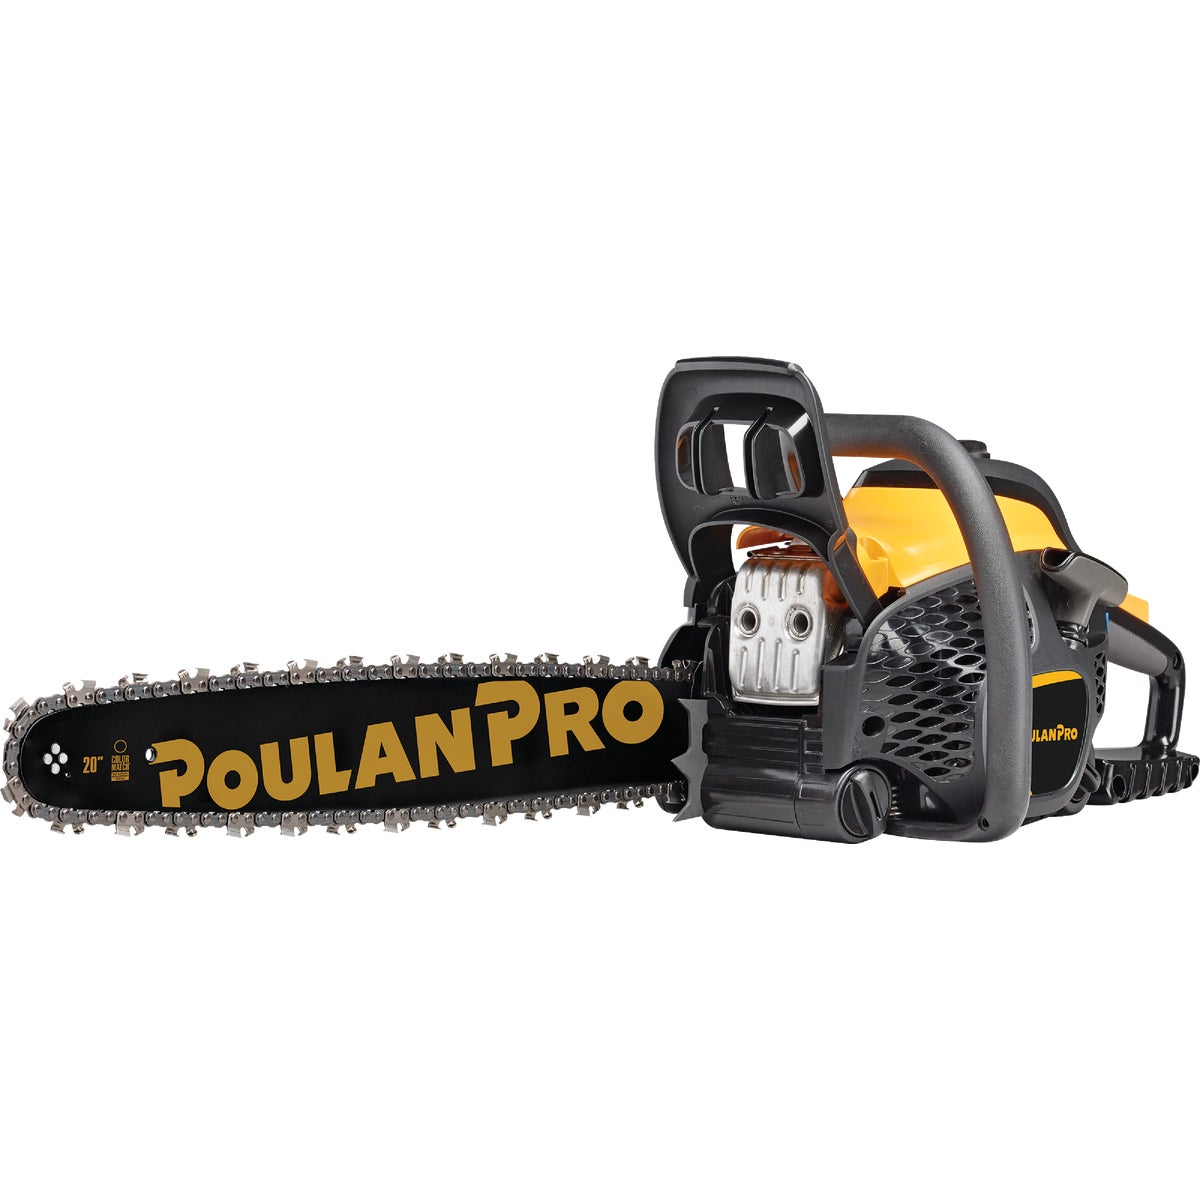 "Husqvarna Outdoor Prod/Poulan Weedeater Poulan Pro PP5020AV 20"" Gas Chain Saw-20"" GAS CHAIN SAW at Sears.com"